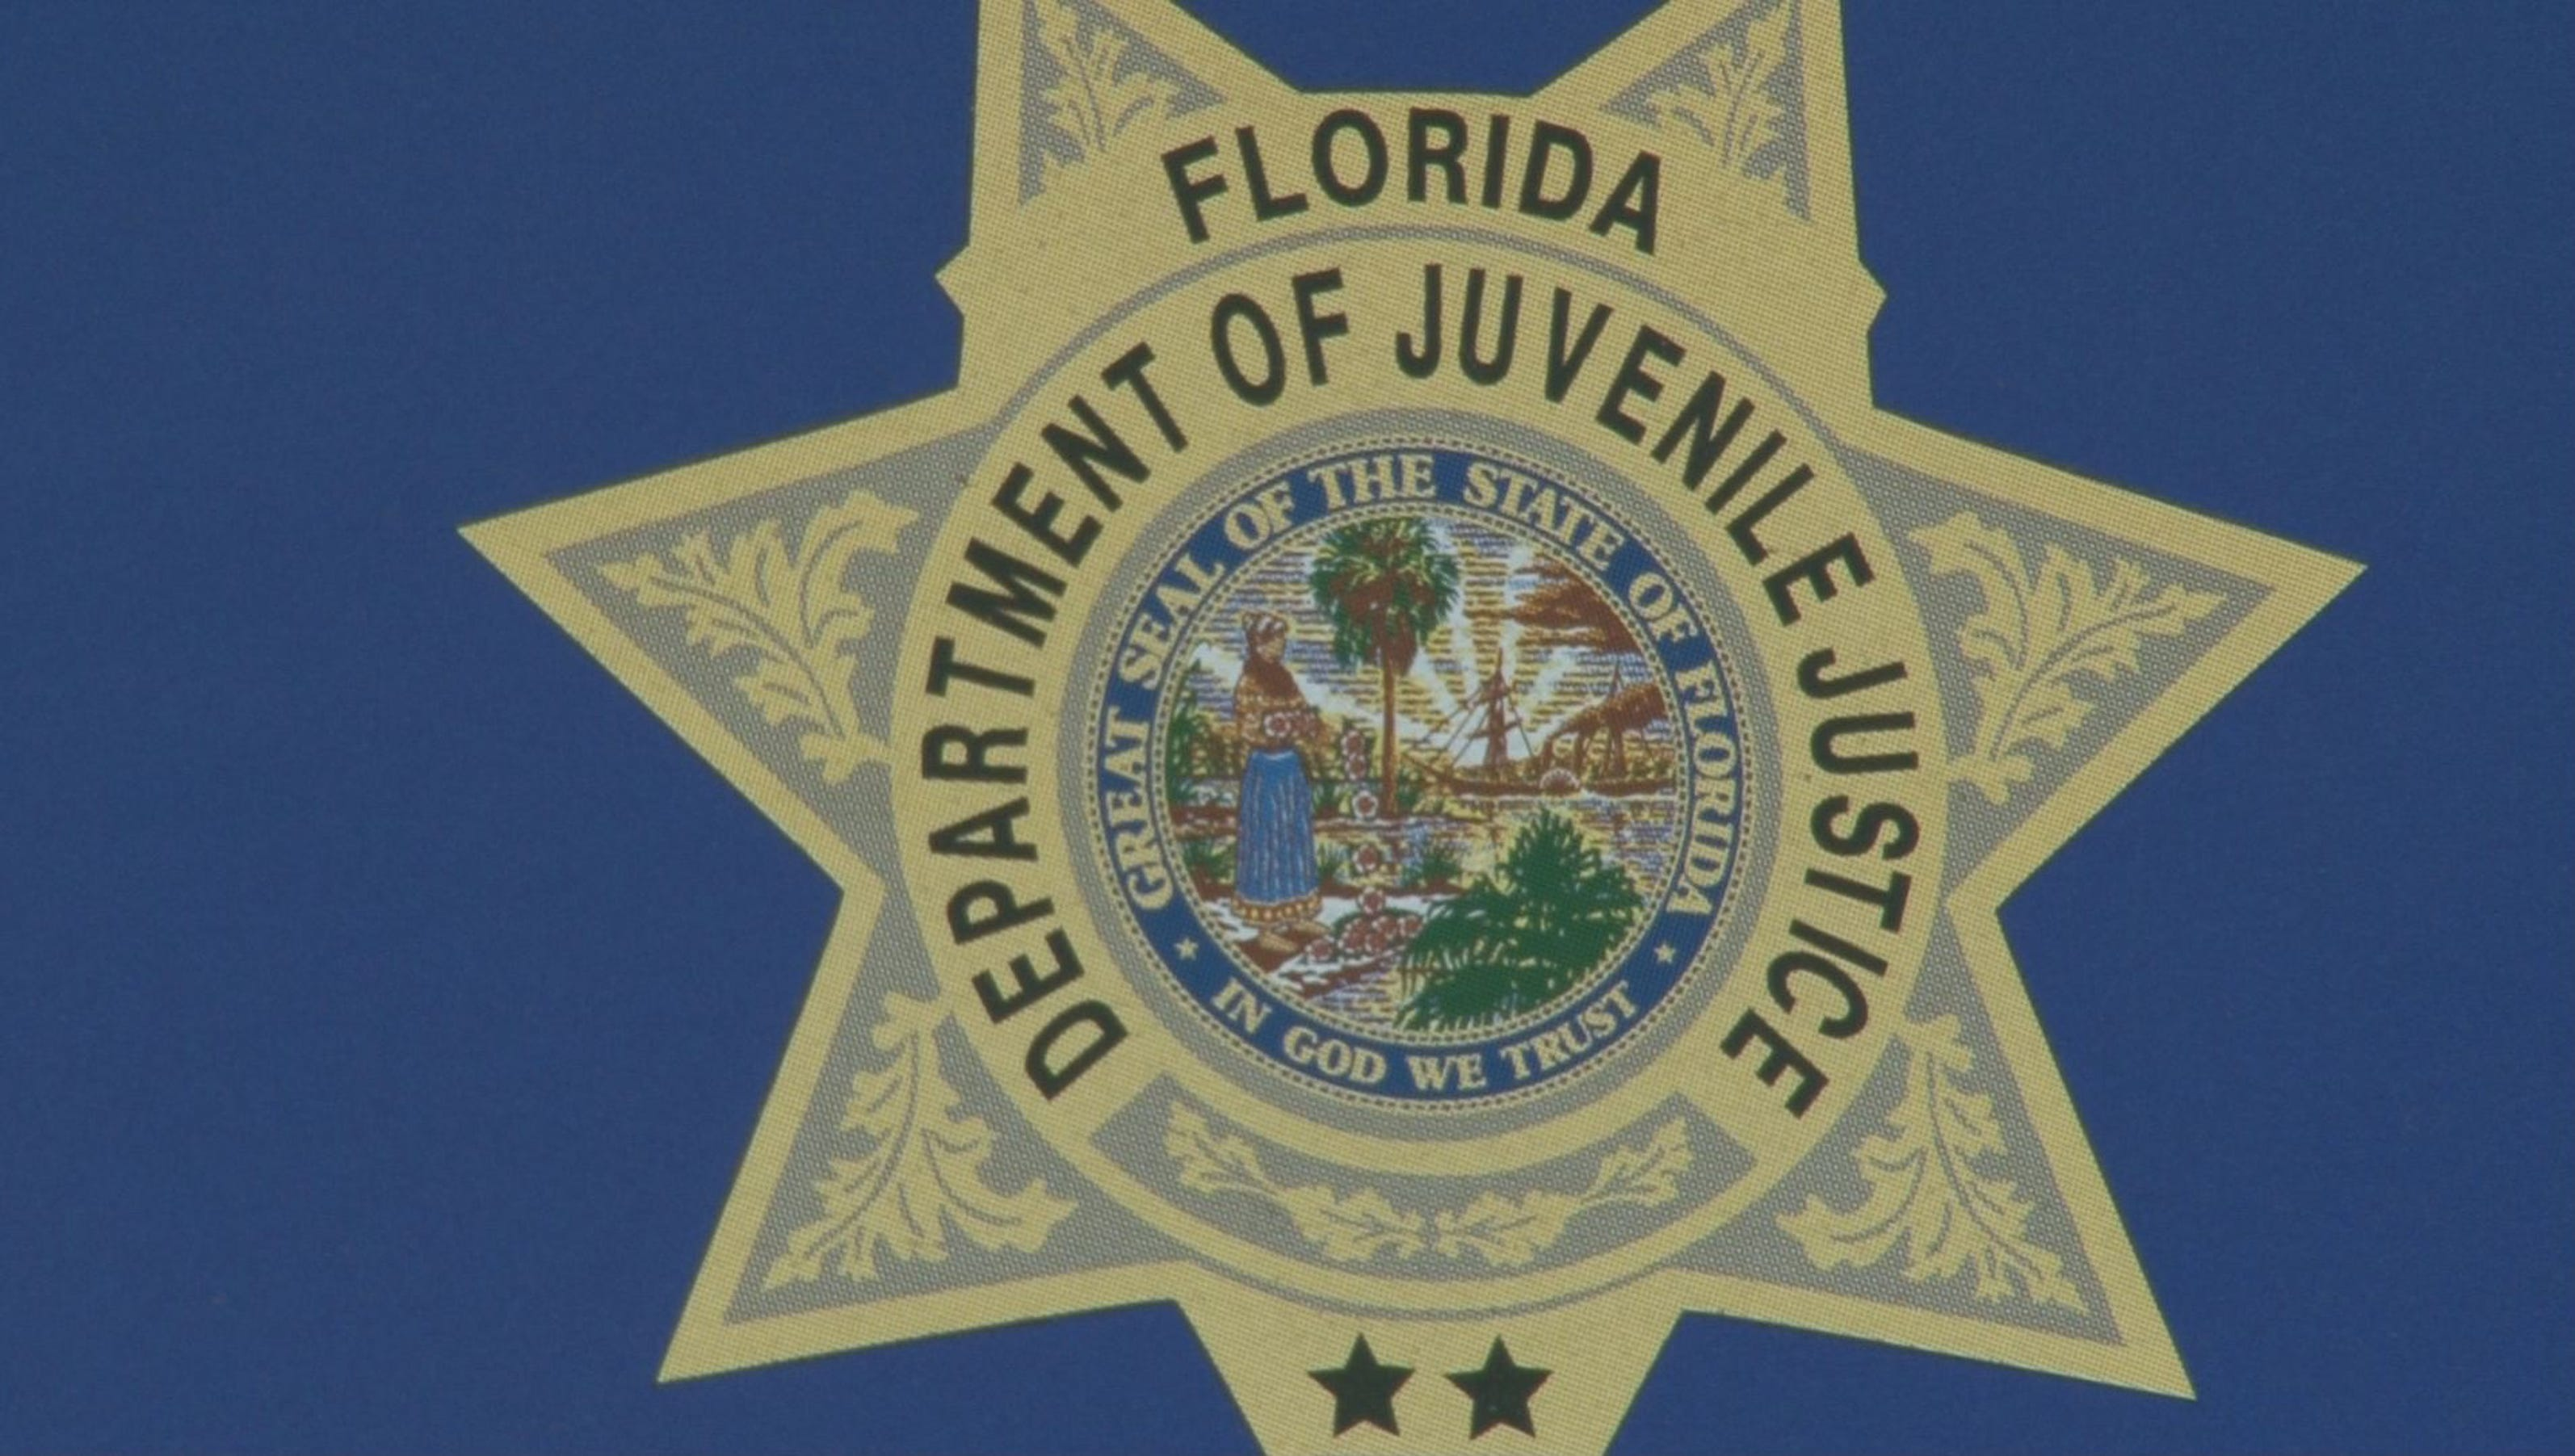 juvenile justice florida Juvenile court the juvenile division works closely with the department of children and family services, the judiciary, state attorney's office, public defender's office, department of juvenile justice, law enforcement and other agencies in carrying out its mission.